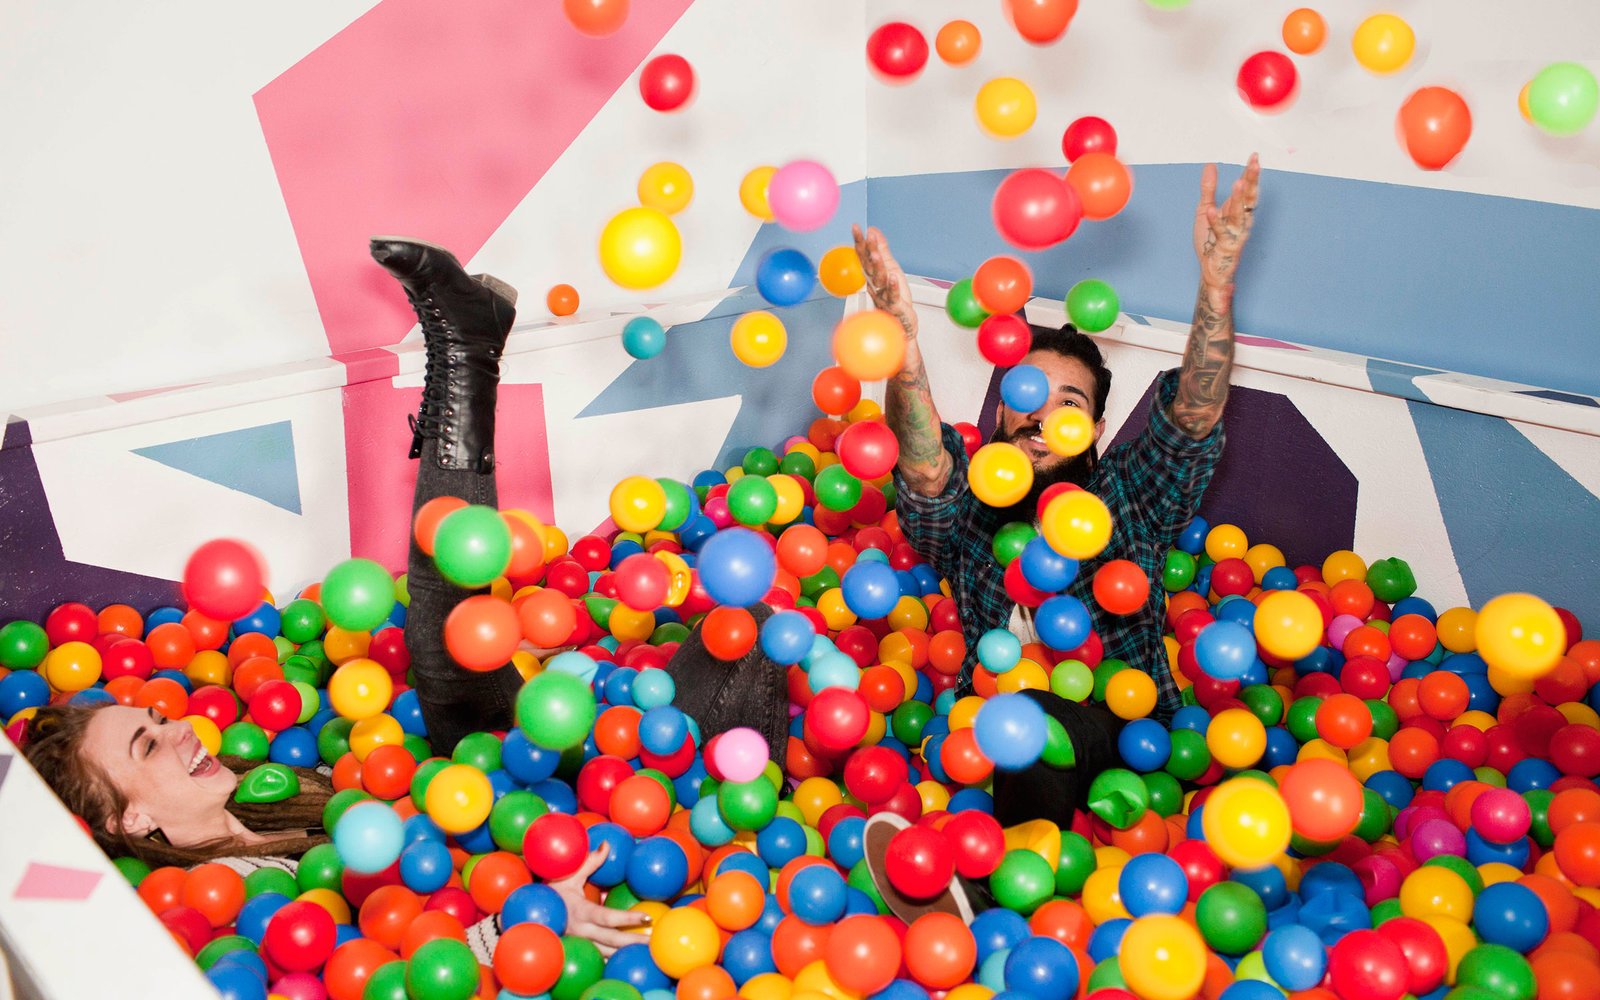 Japan Has A Bar That's A Giant Ball Pit